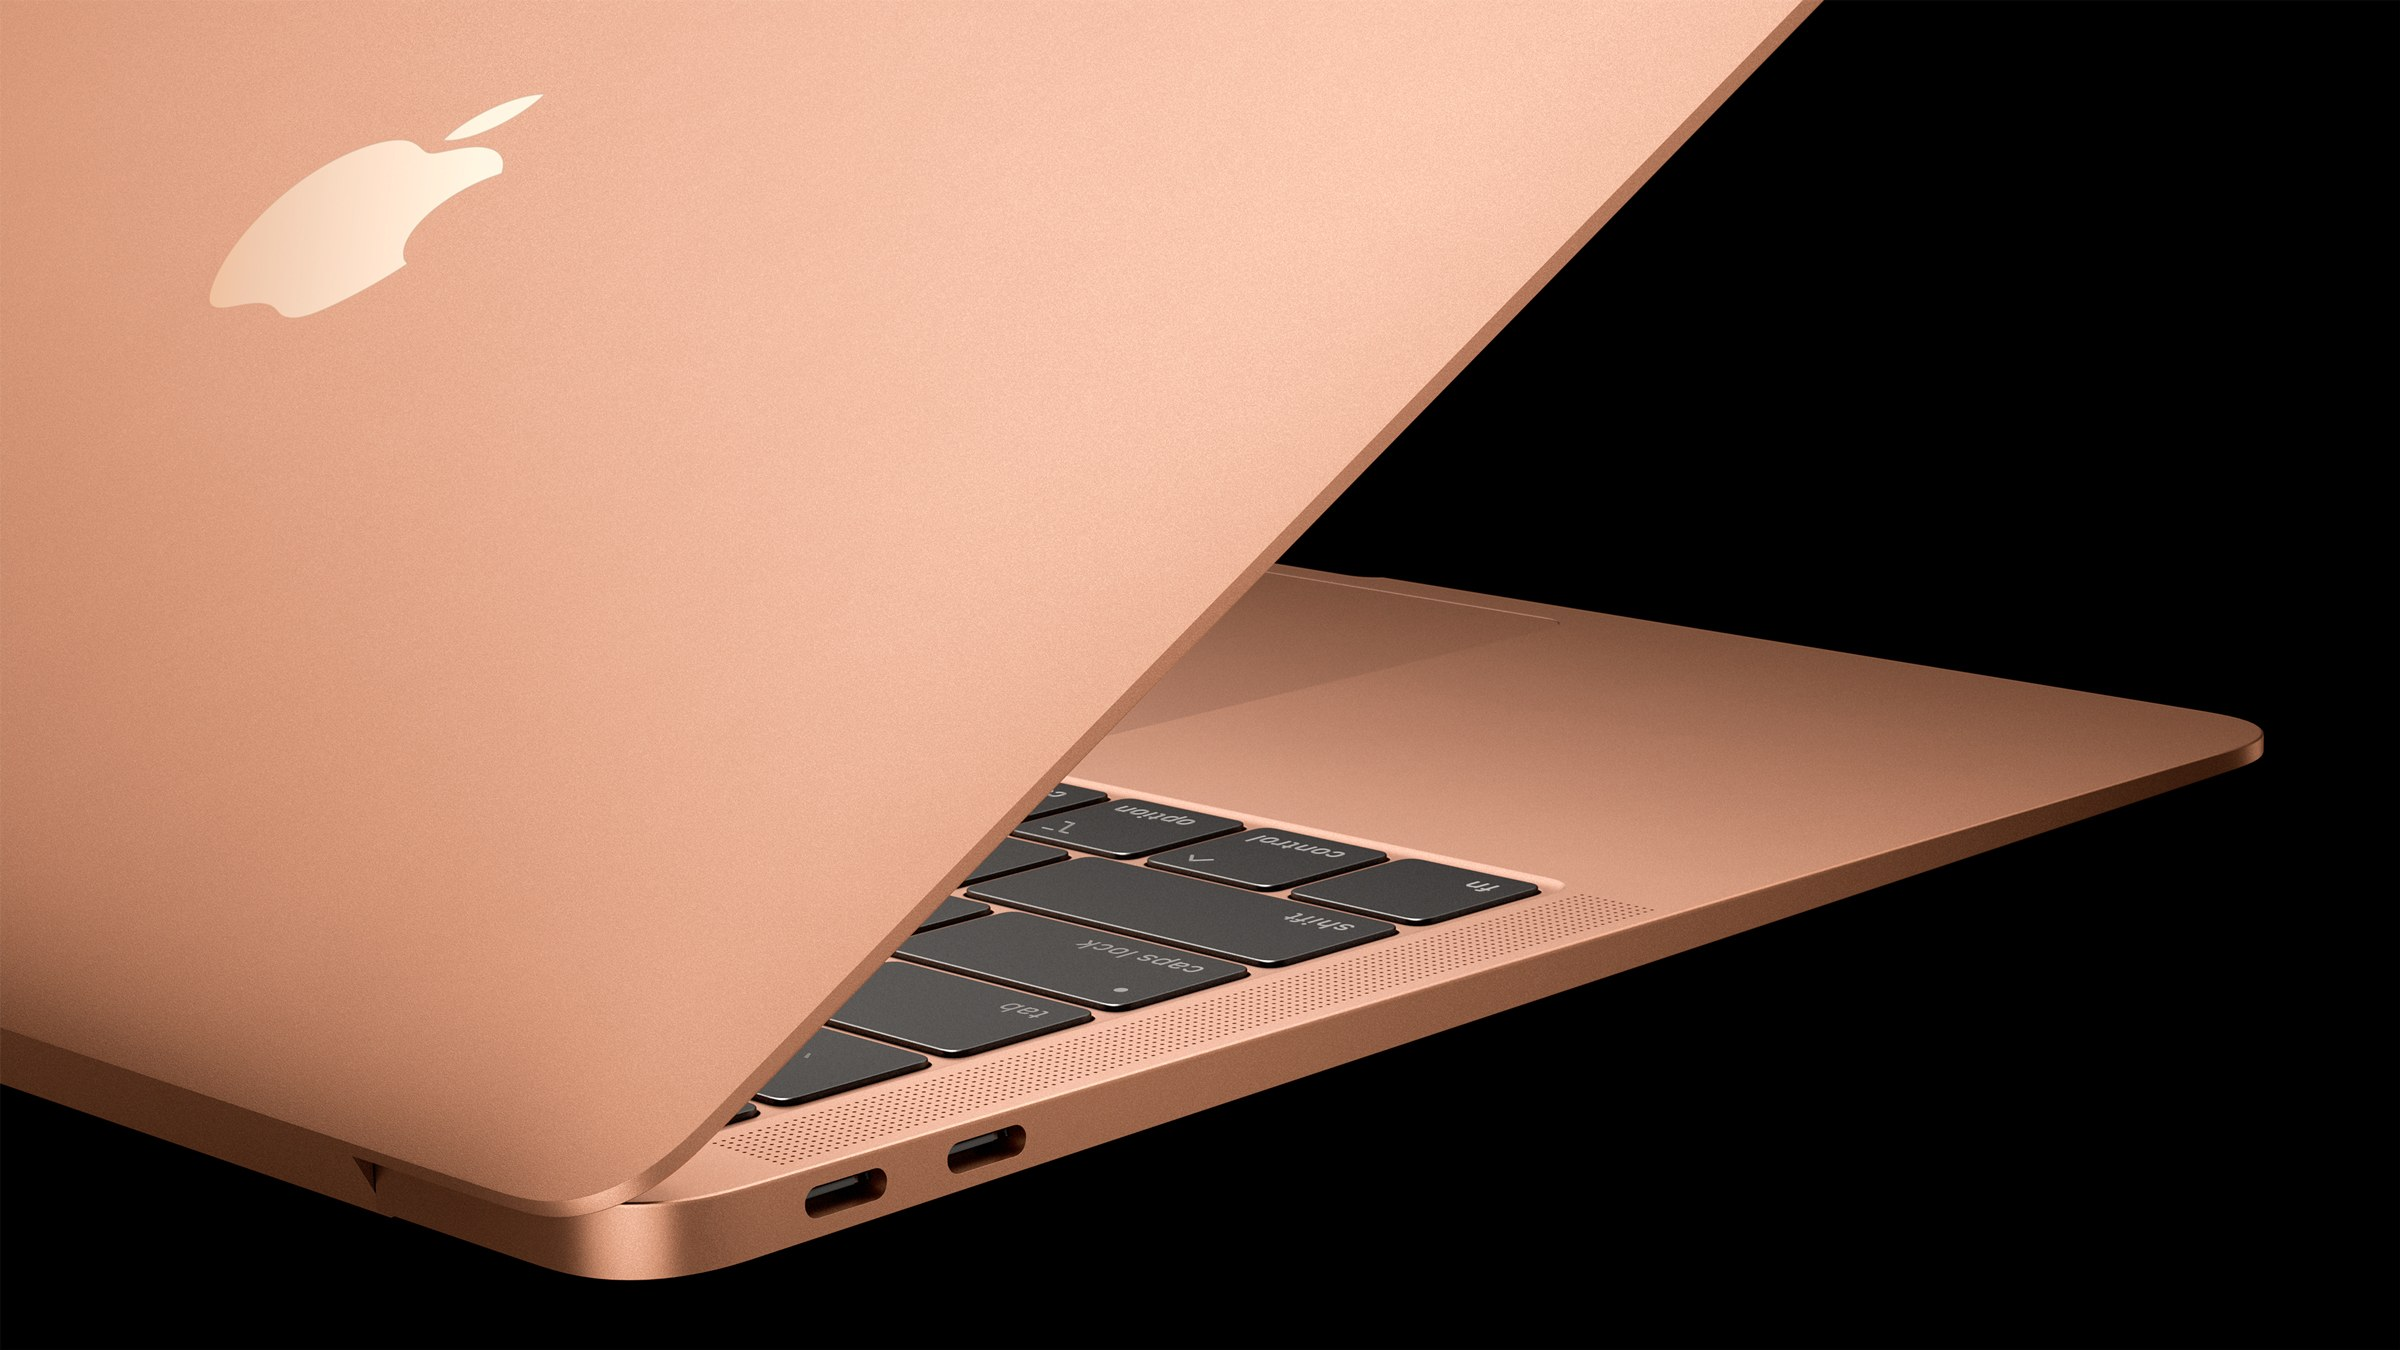 Yeni MacBook Air 2018